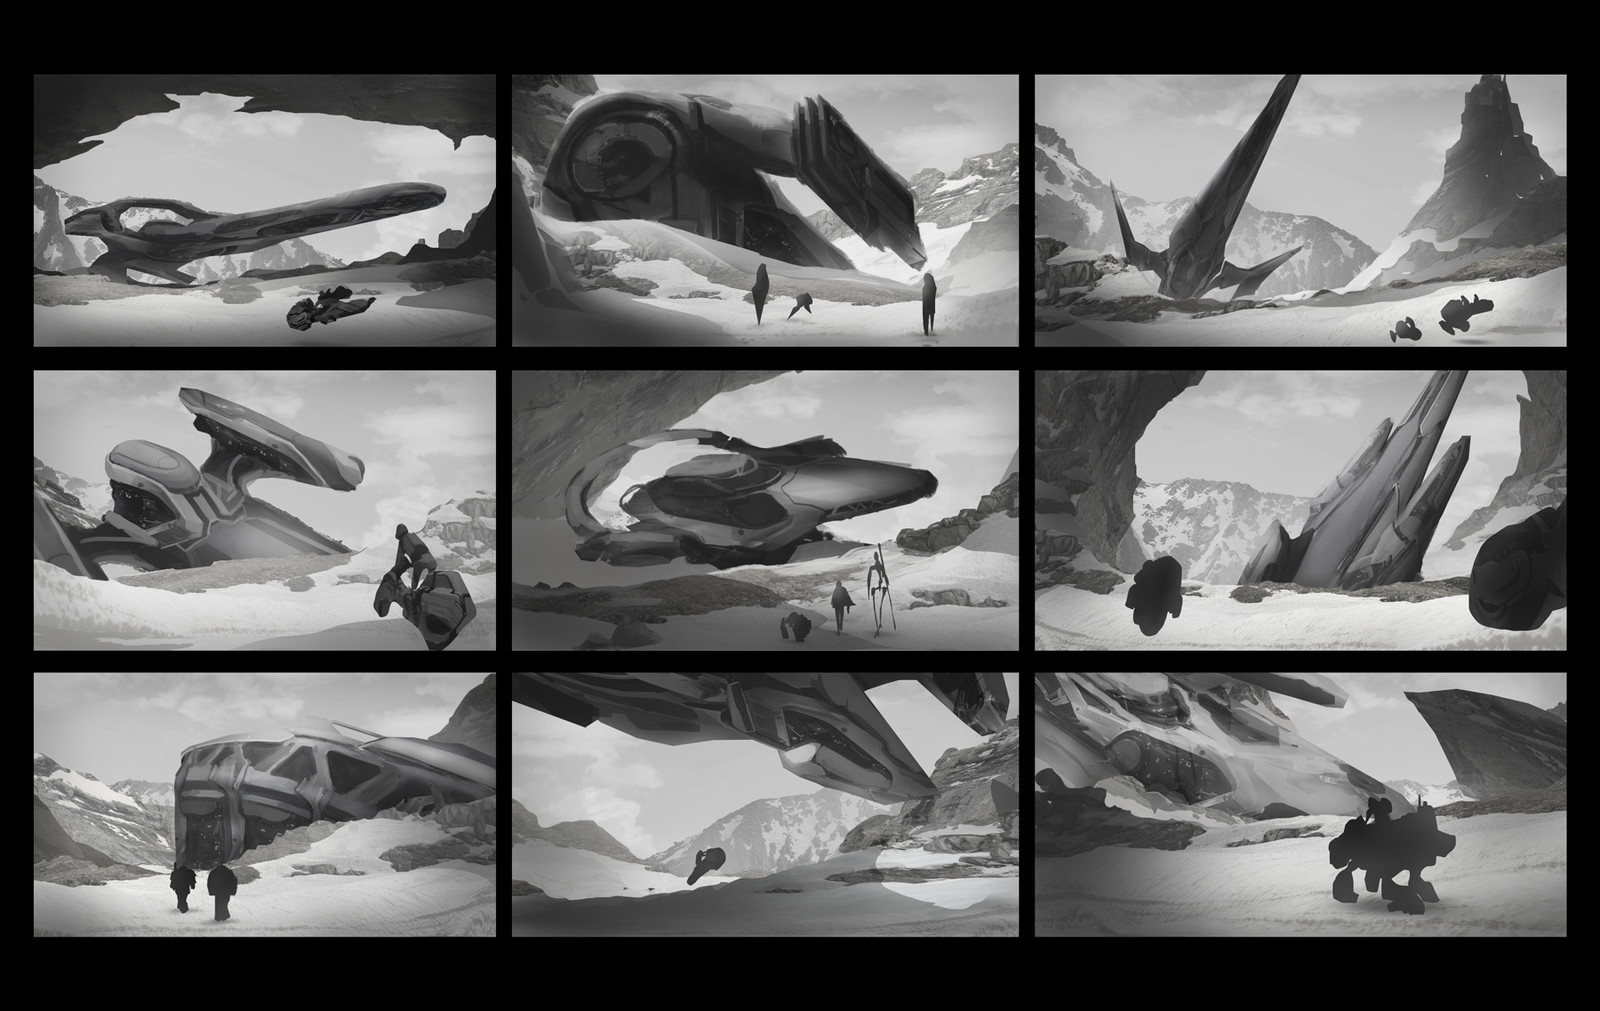 Composition and story sketches.